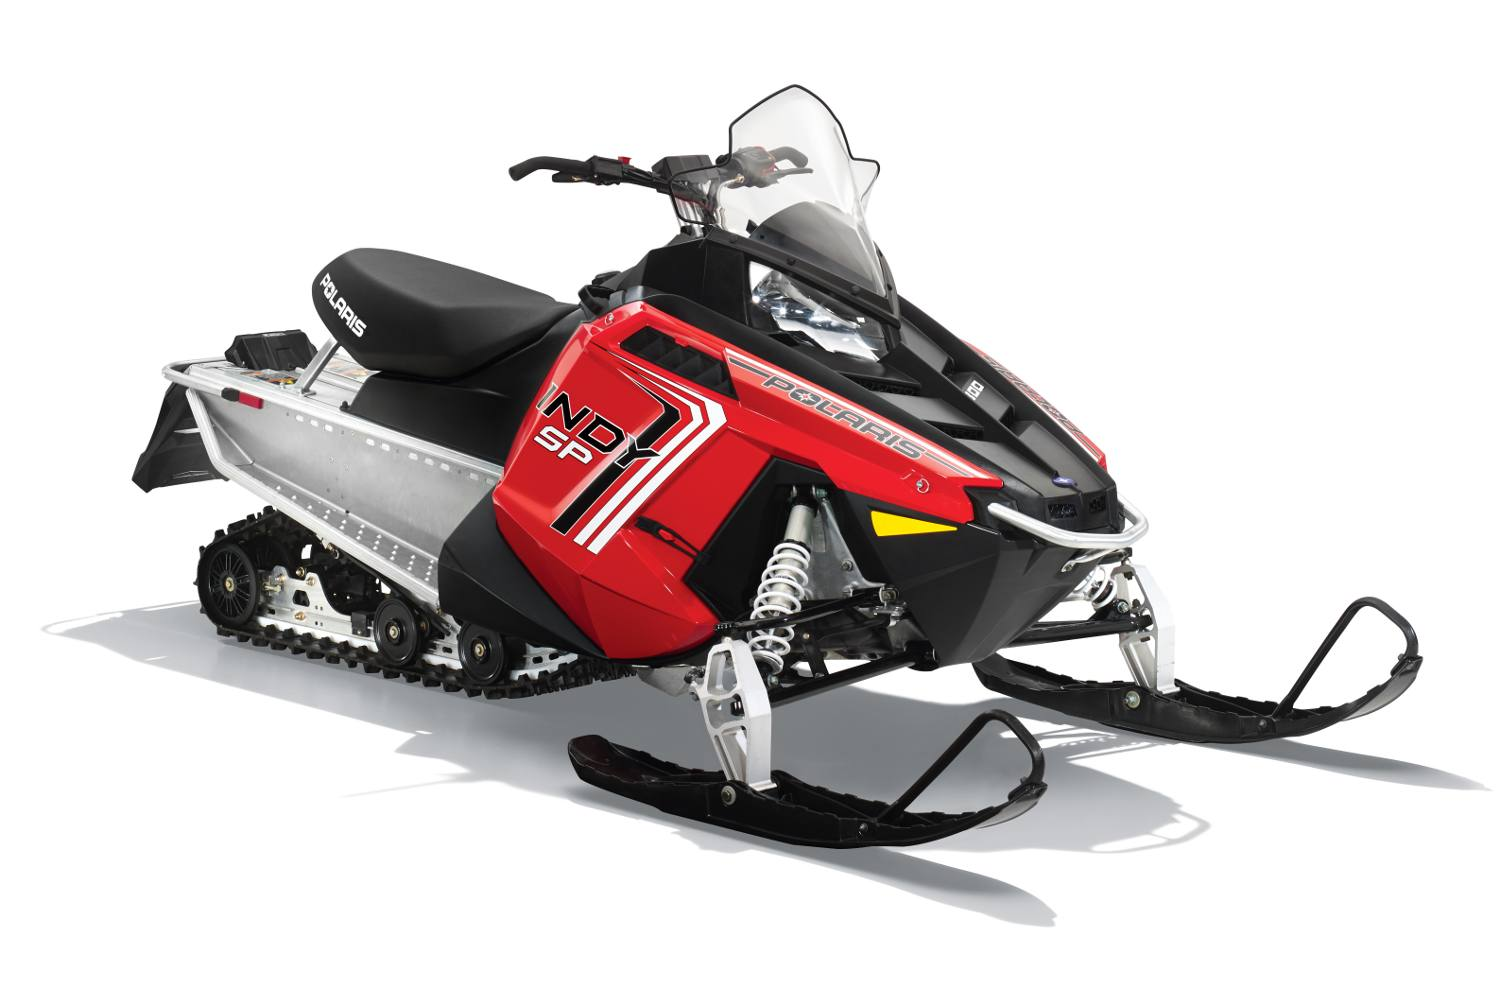 Used Snowmobile From Polaris Industries FM Abbott Power Equipment